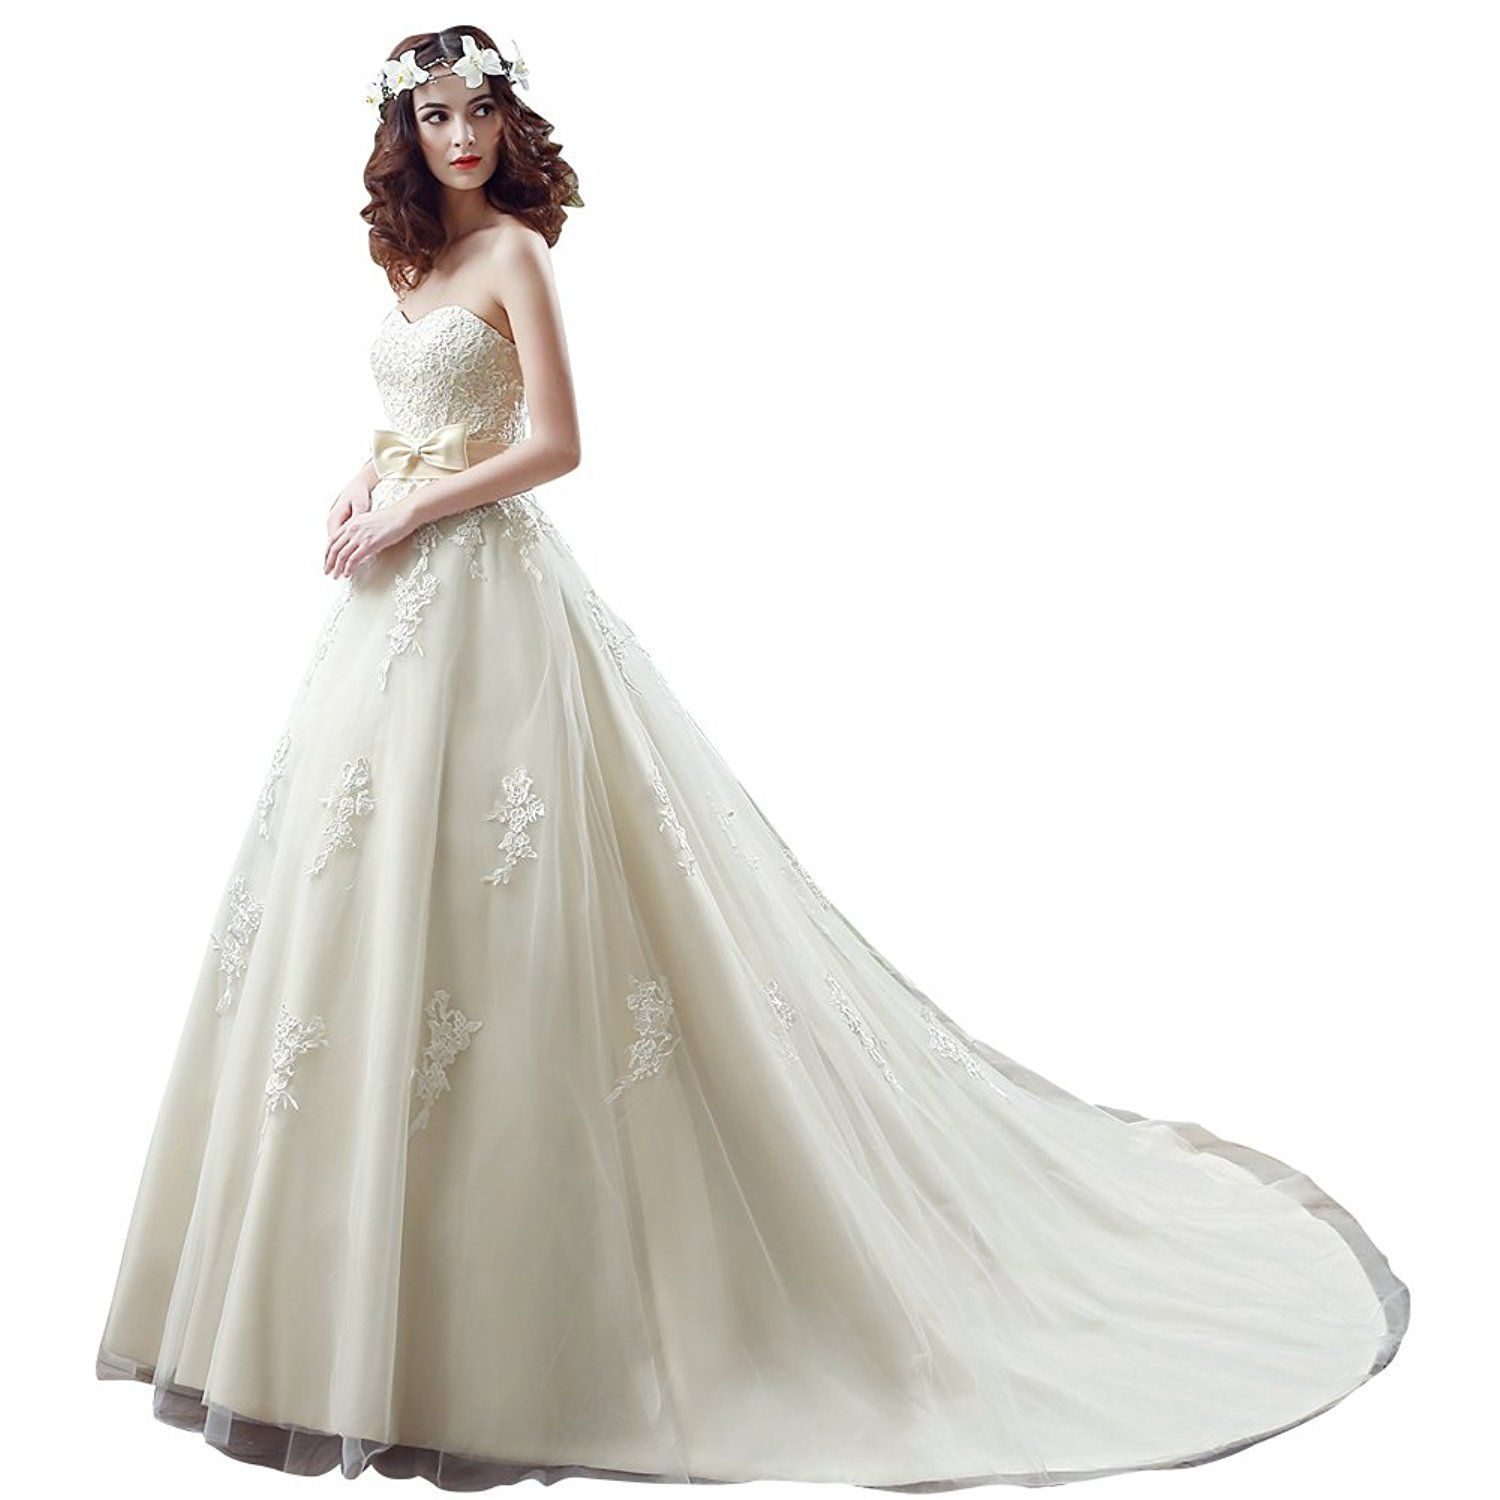 Sipei womens wedding dresses embroidery bowknot court ball gown